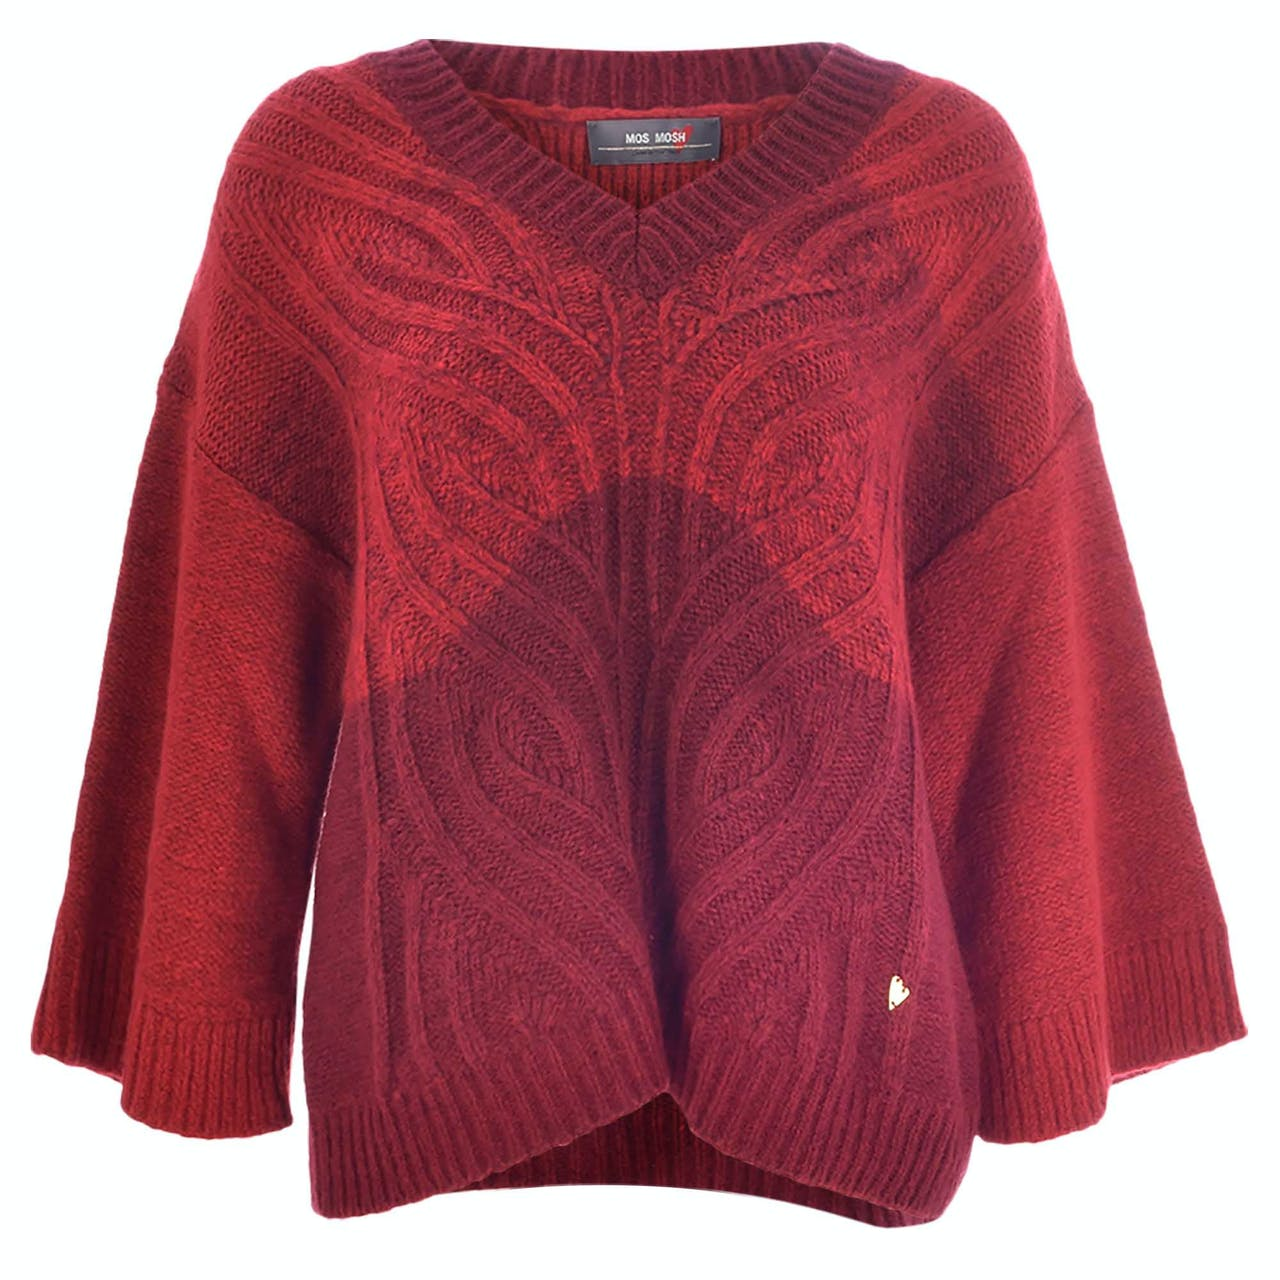 Strickpullover - Loose Fit - Woll-Mix